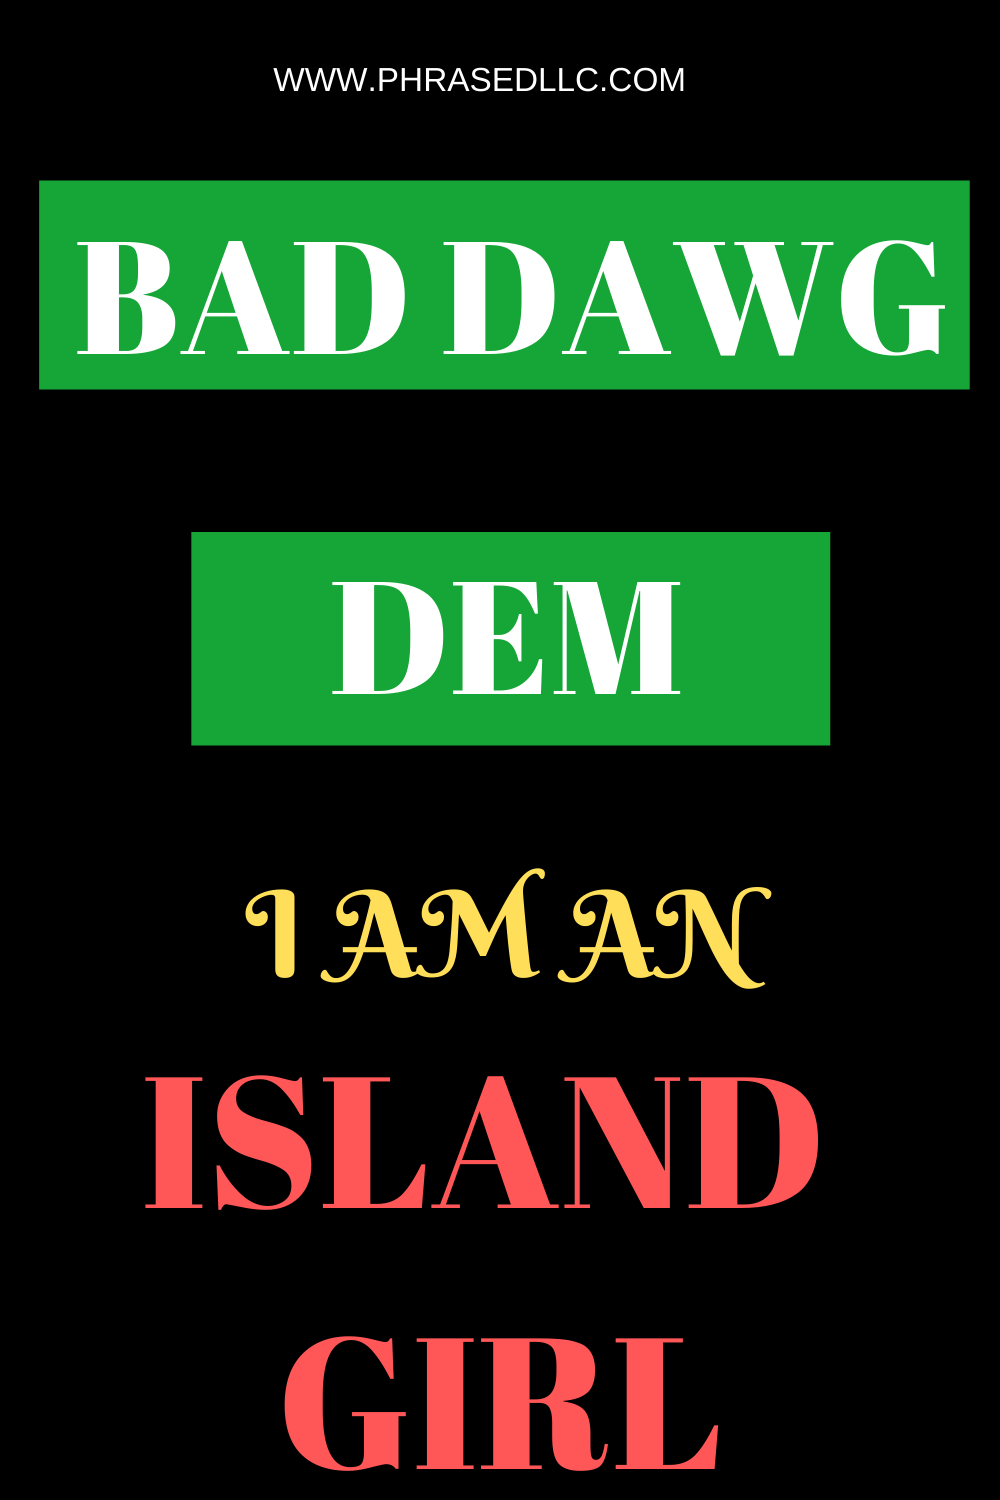 Learn about Kingston and the people of Jamaica in the I am an Island Girl series. Learn about culture, values, beliefs and cultural words in Bad Dawg Dem.